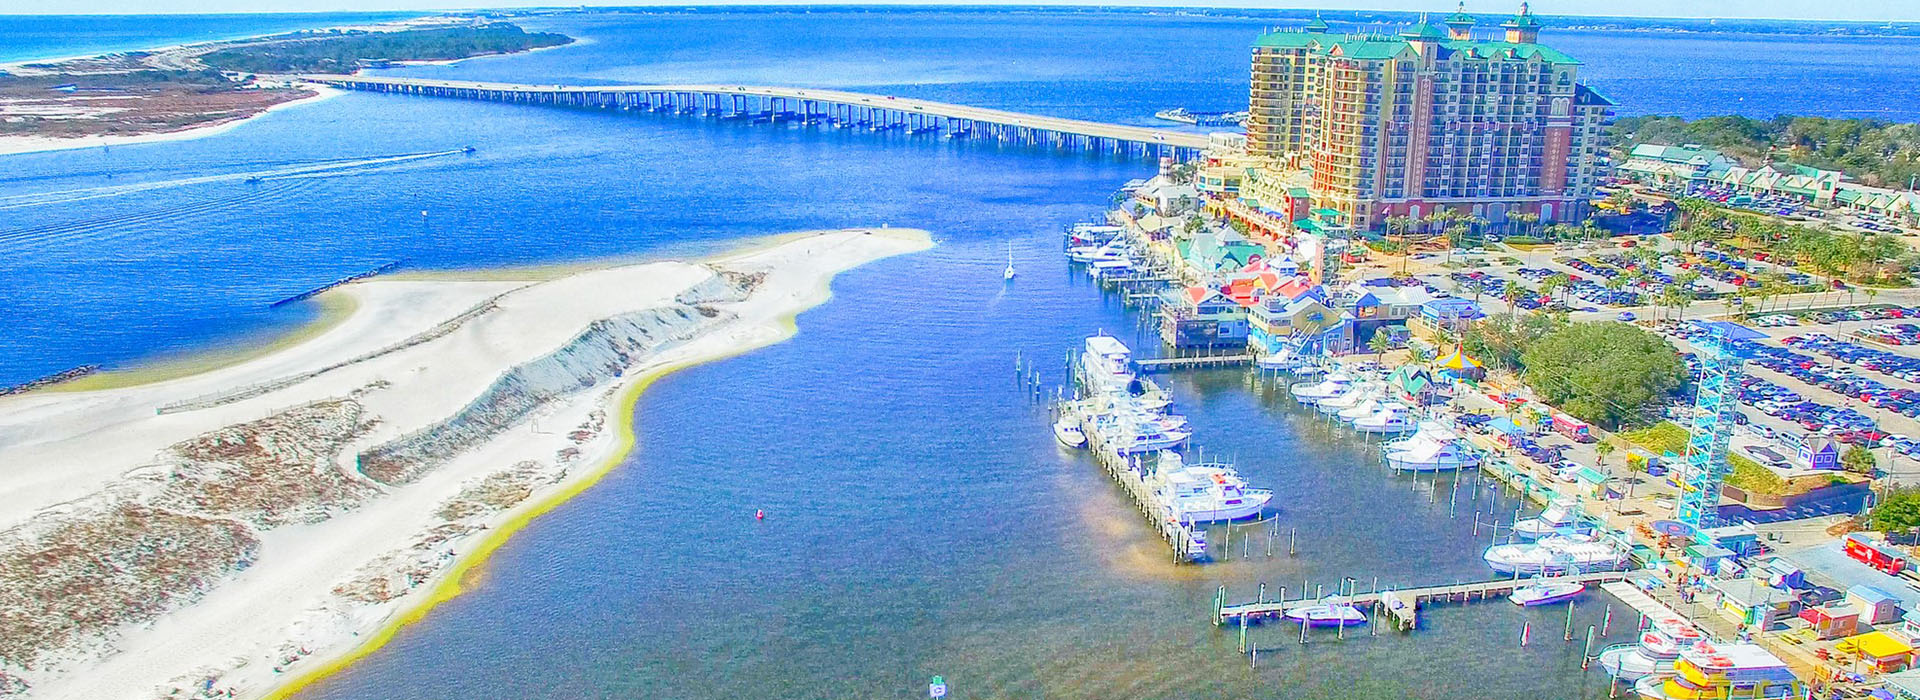 Destin, Florida. Aerial view of beautiful city skyline